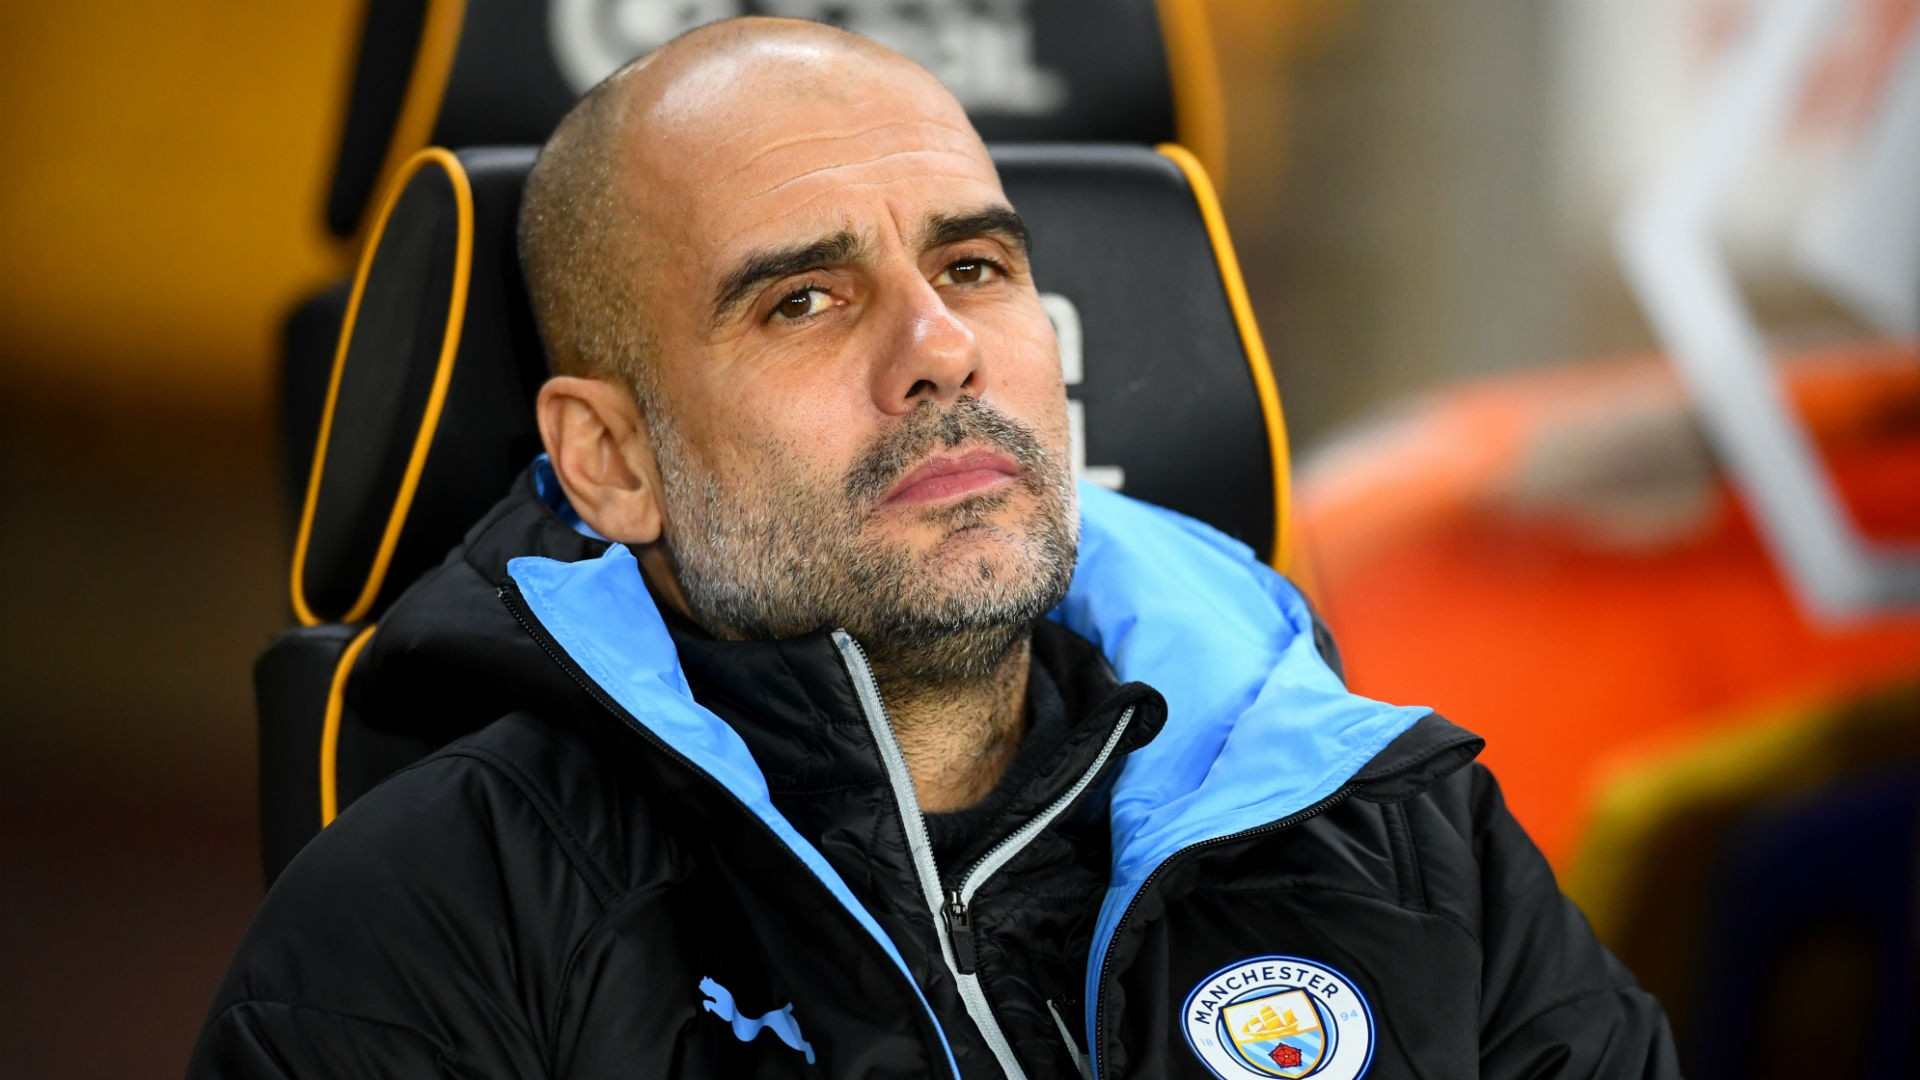 9 epl clubs don't want man city to compete in europe next season - Bóng Đá